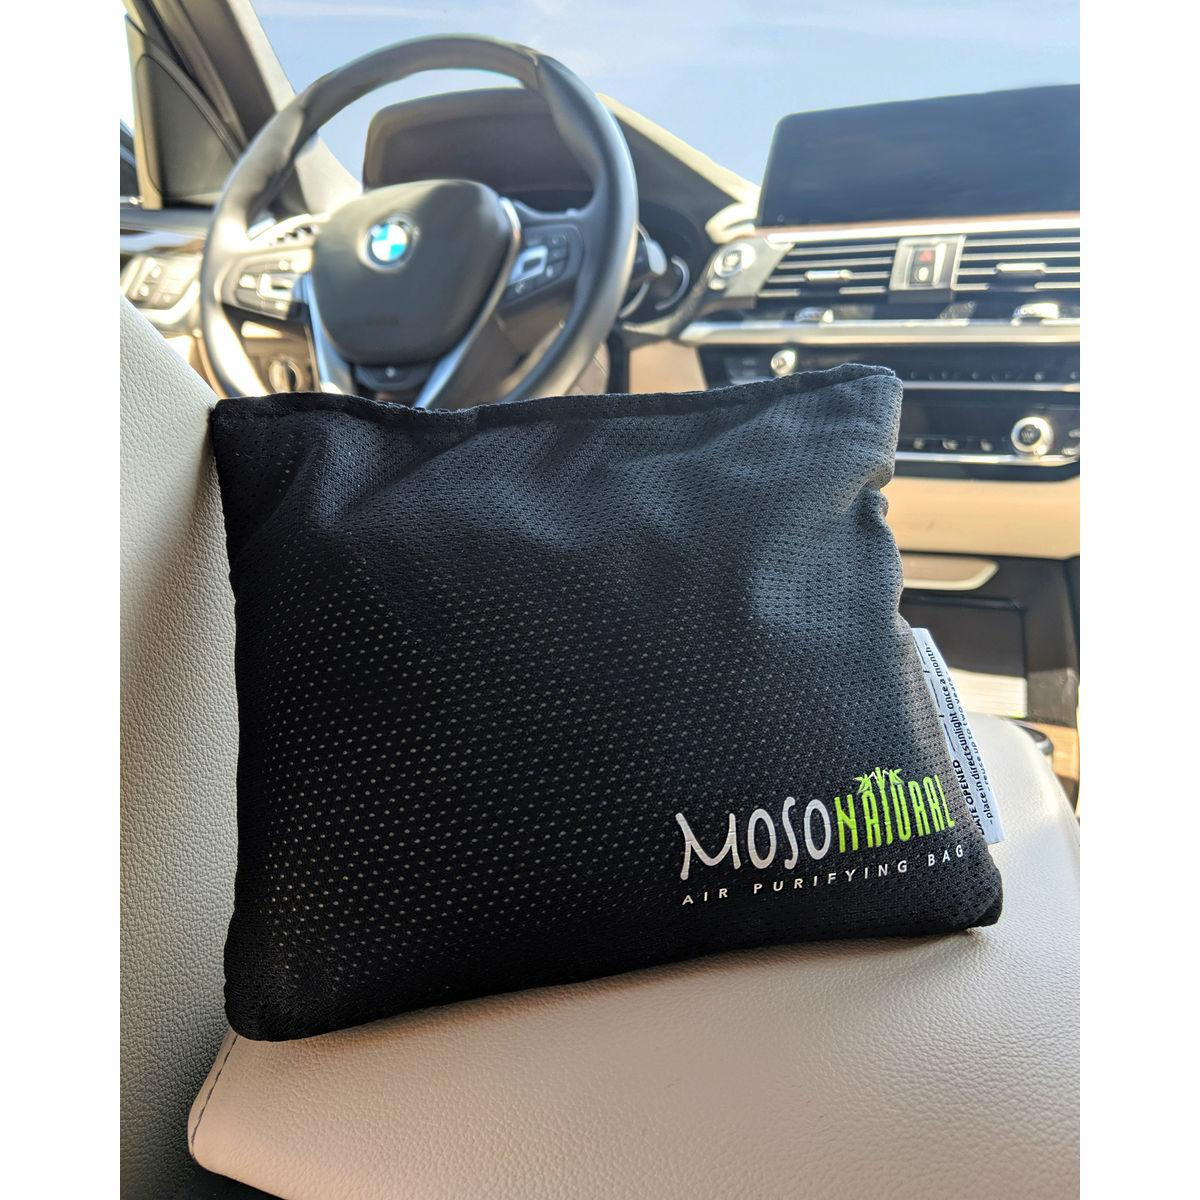 Moso Natural Air Purifying Car Bag - Black